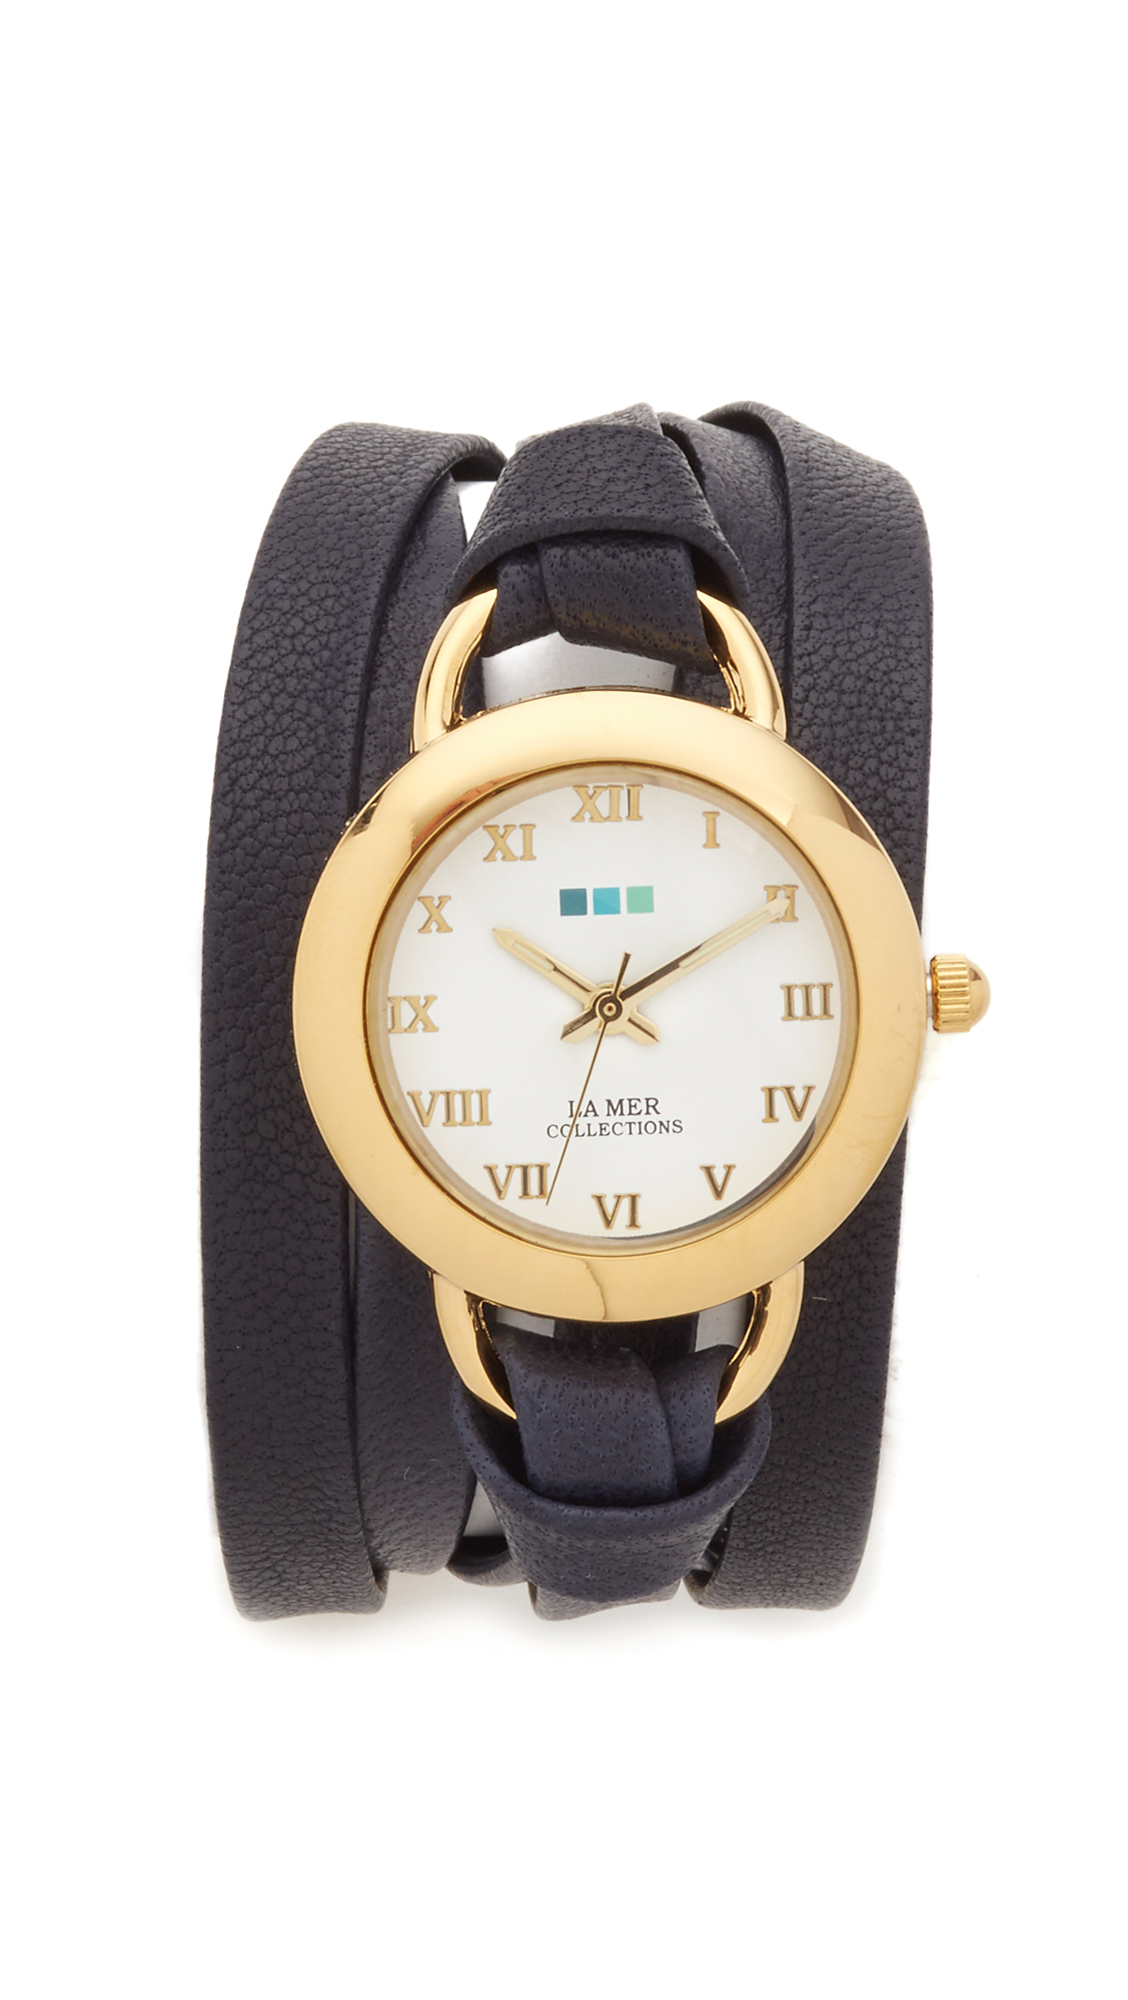 Shop HSN for a wide selection of la mer watch from top brands. Whether you are looking for the best la mer watch or top-of-the-line la mer watch at affordable prices, you'll find a variety of la mer watch that fits your needs and budget. And don't forget, your la mer watch order may qualify for FlexPay, allowing you to buy now and pay later.